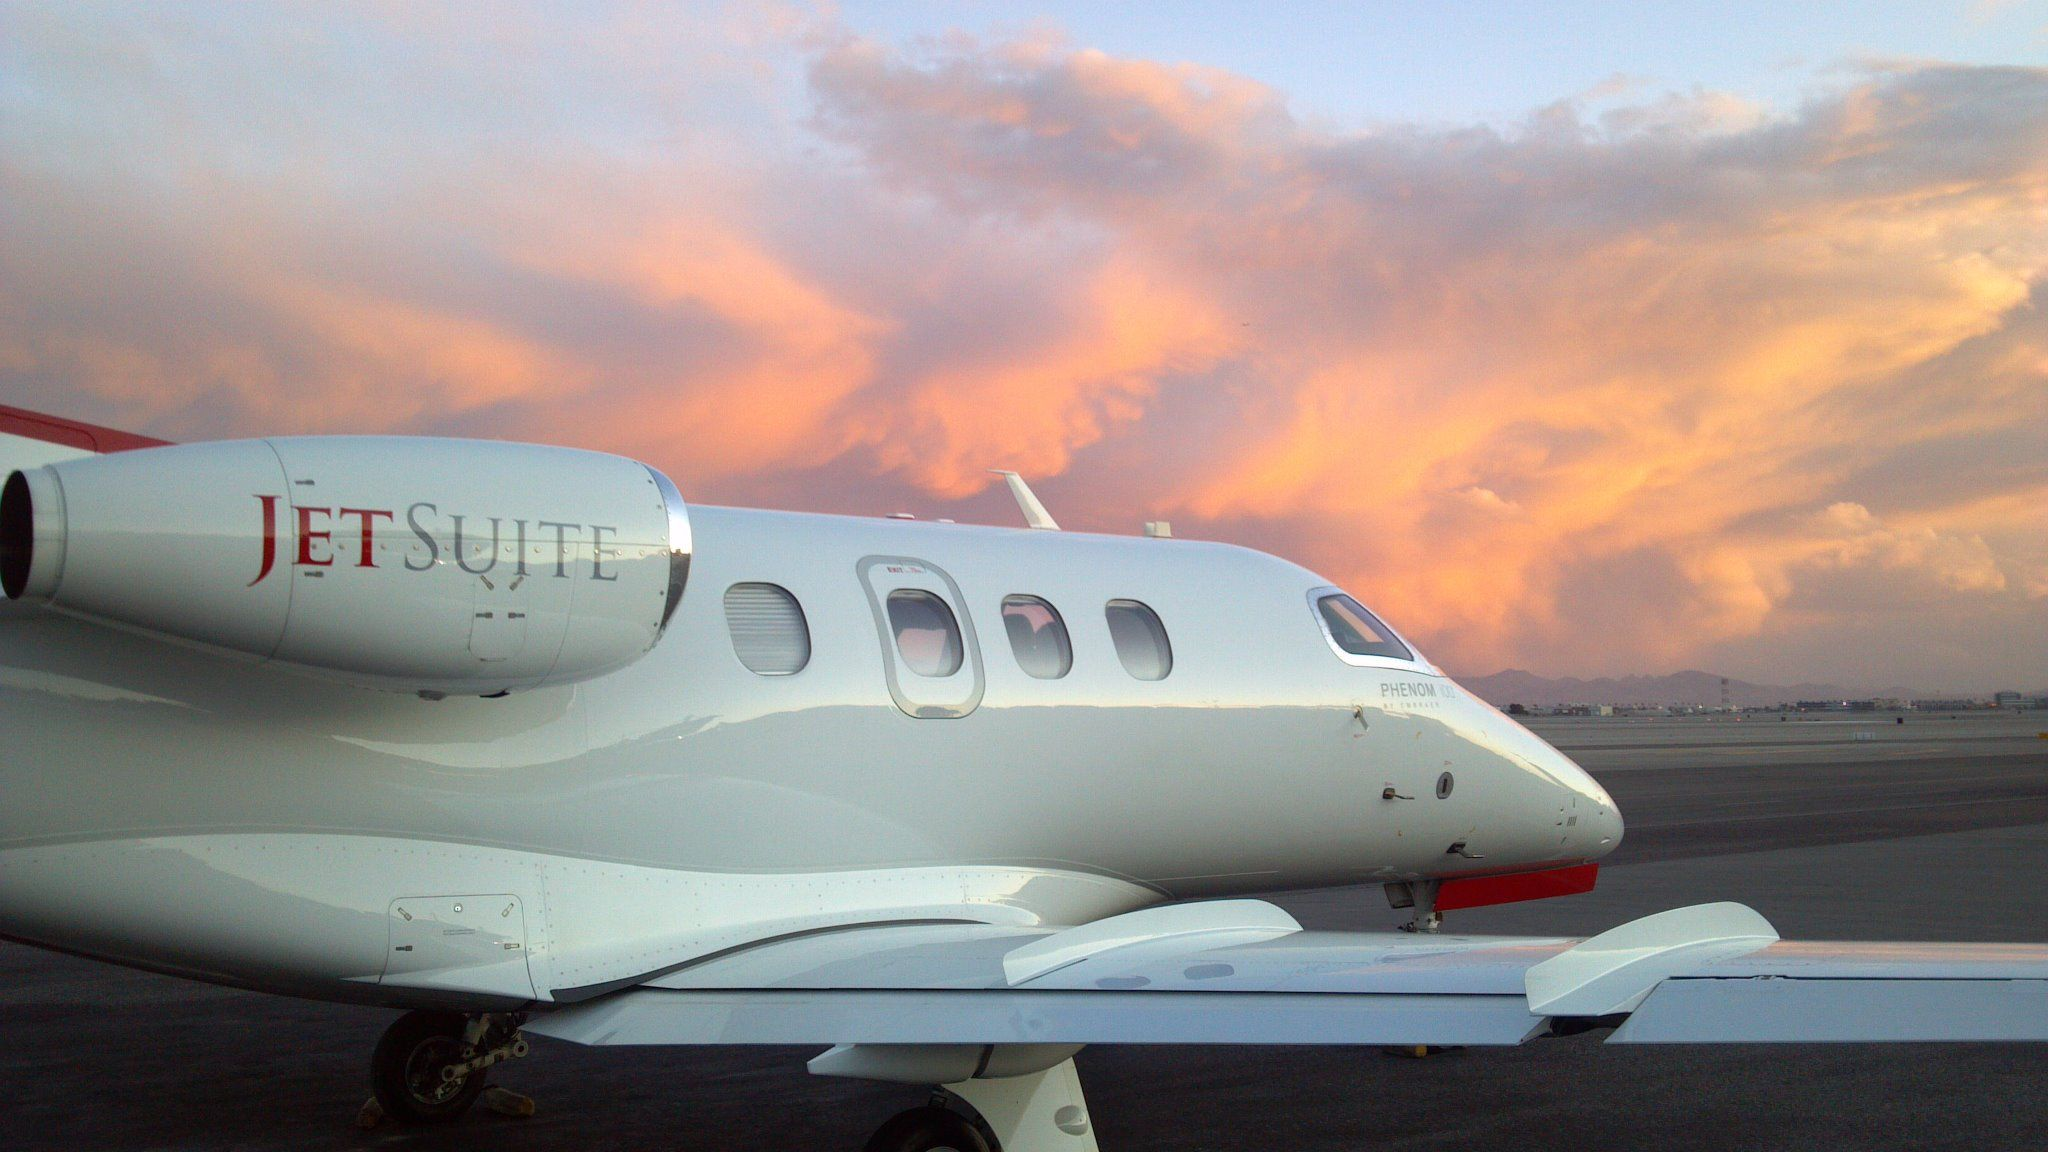 Private Jet Quote This Beautiful Photo Takenjetsuite Pilot Court Williams During